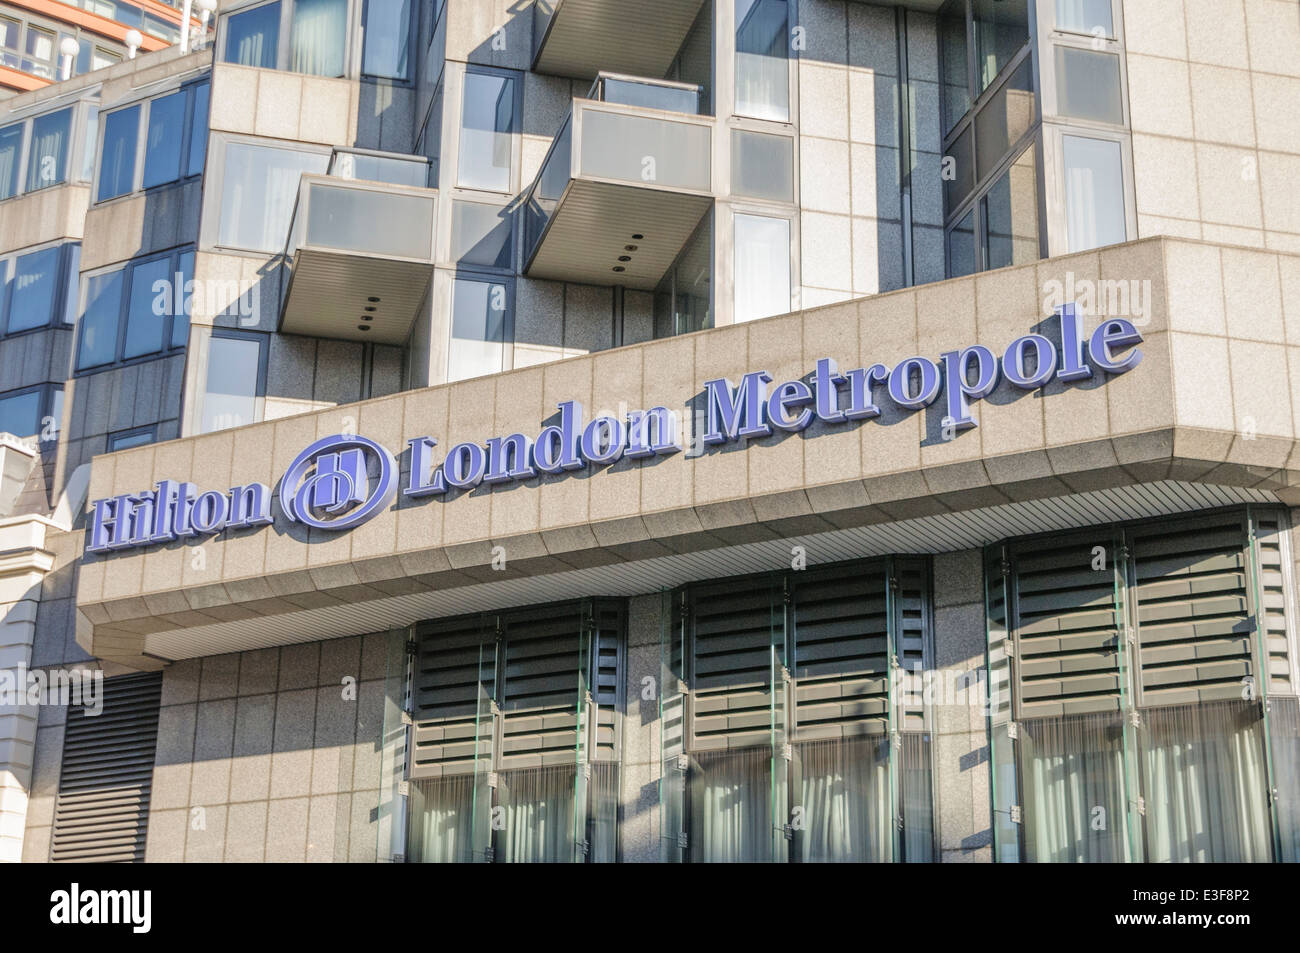 Hilton London Metropole Hotel - Stock Image